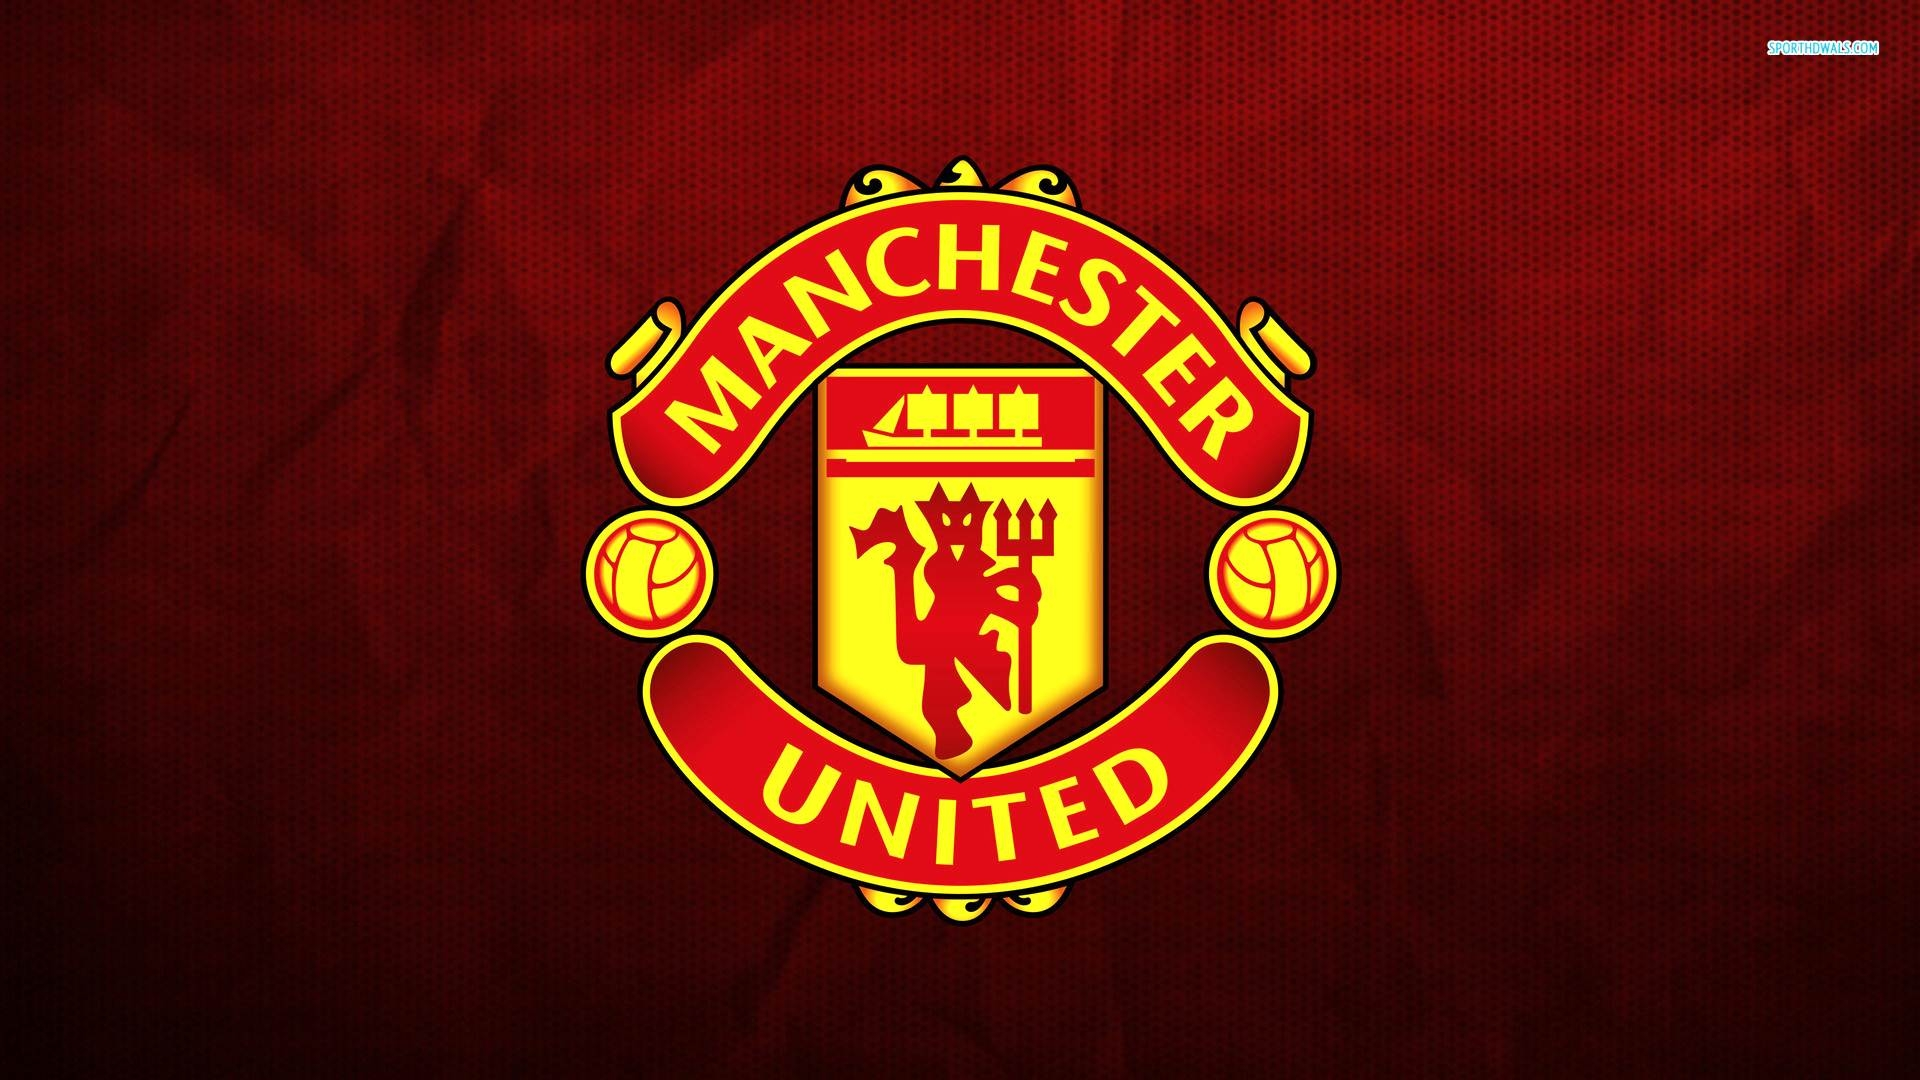 New Manchester United Wallpapers Hd 2017 Great Foofball Club 1920x1080